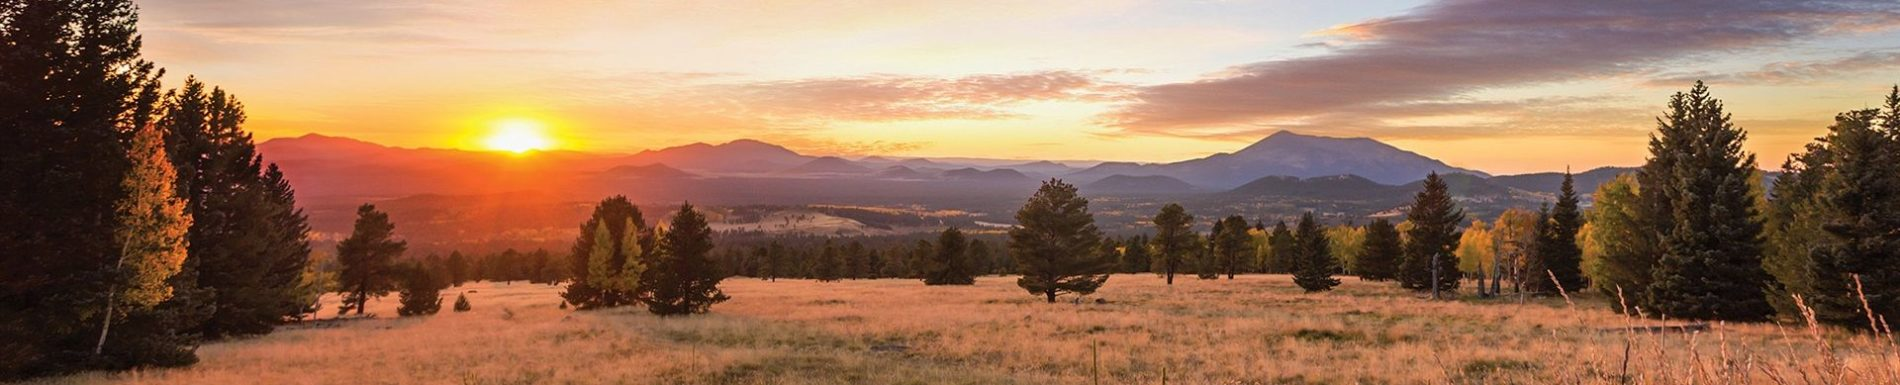 Flagstaff is truly a beautiful place.